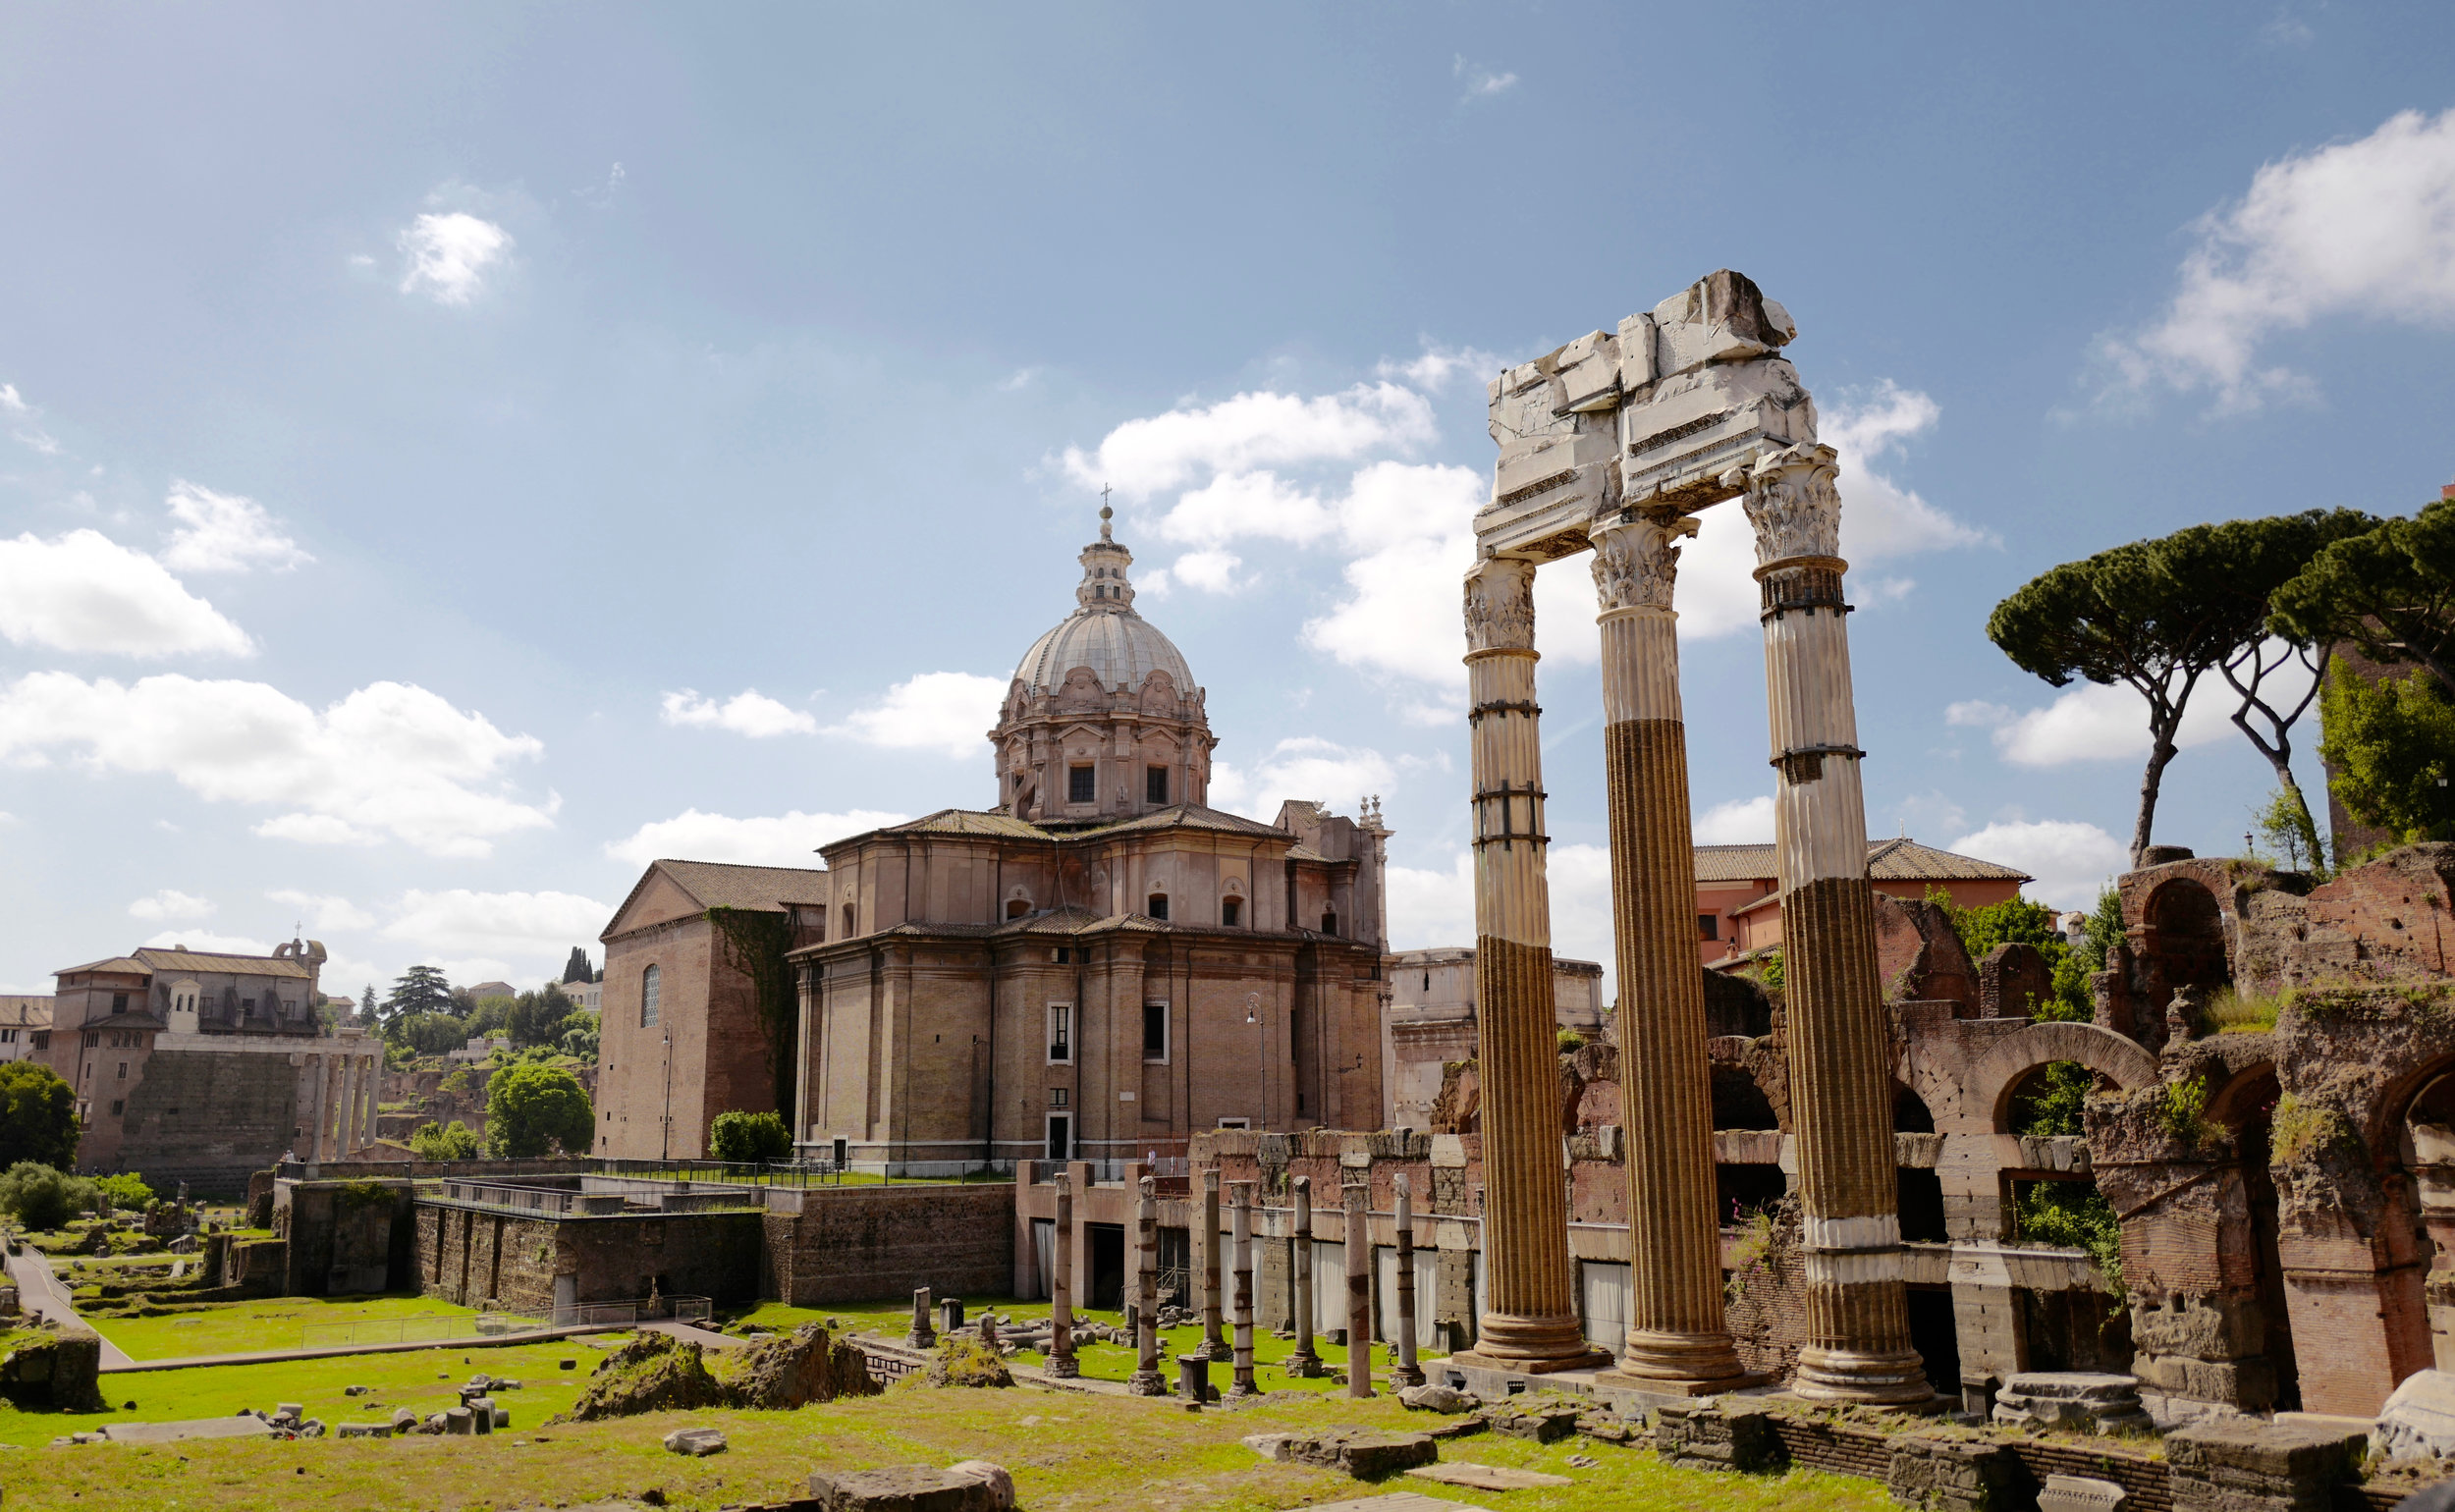 The Roman Forum with the Temple of Castor and Pollux (3 columns) in the foreground